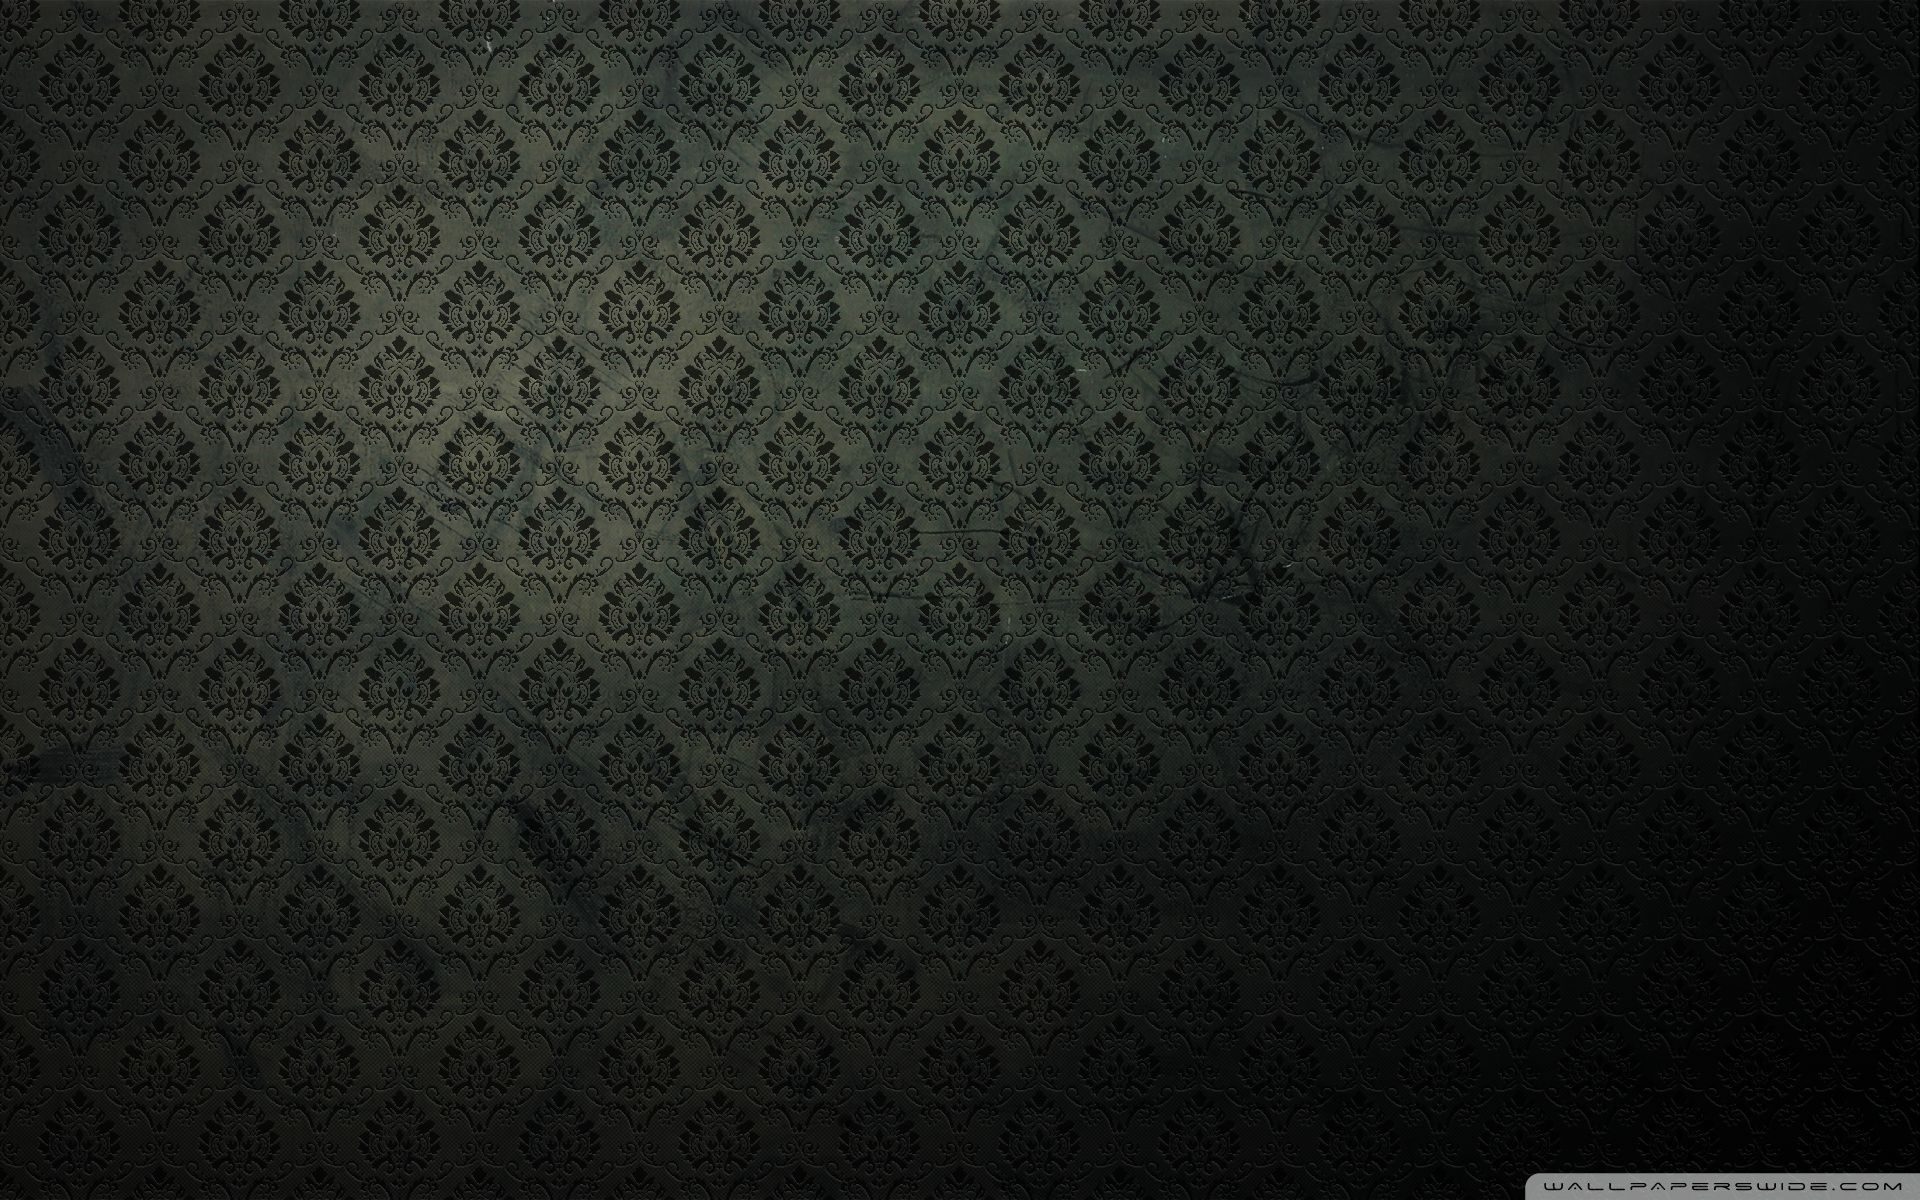 Classic Wallpapers   Top Classic Backgrounds   WallpaperAccess 1920x1200